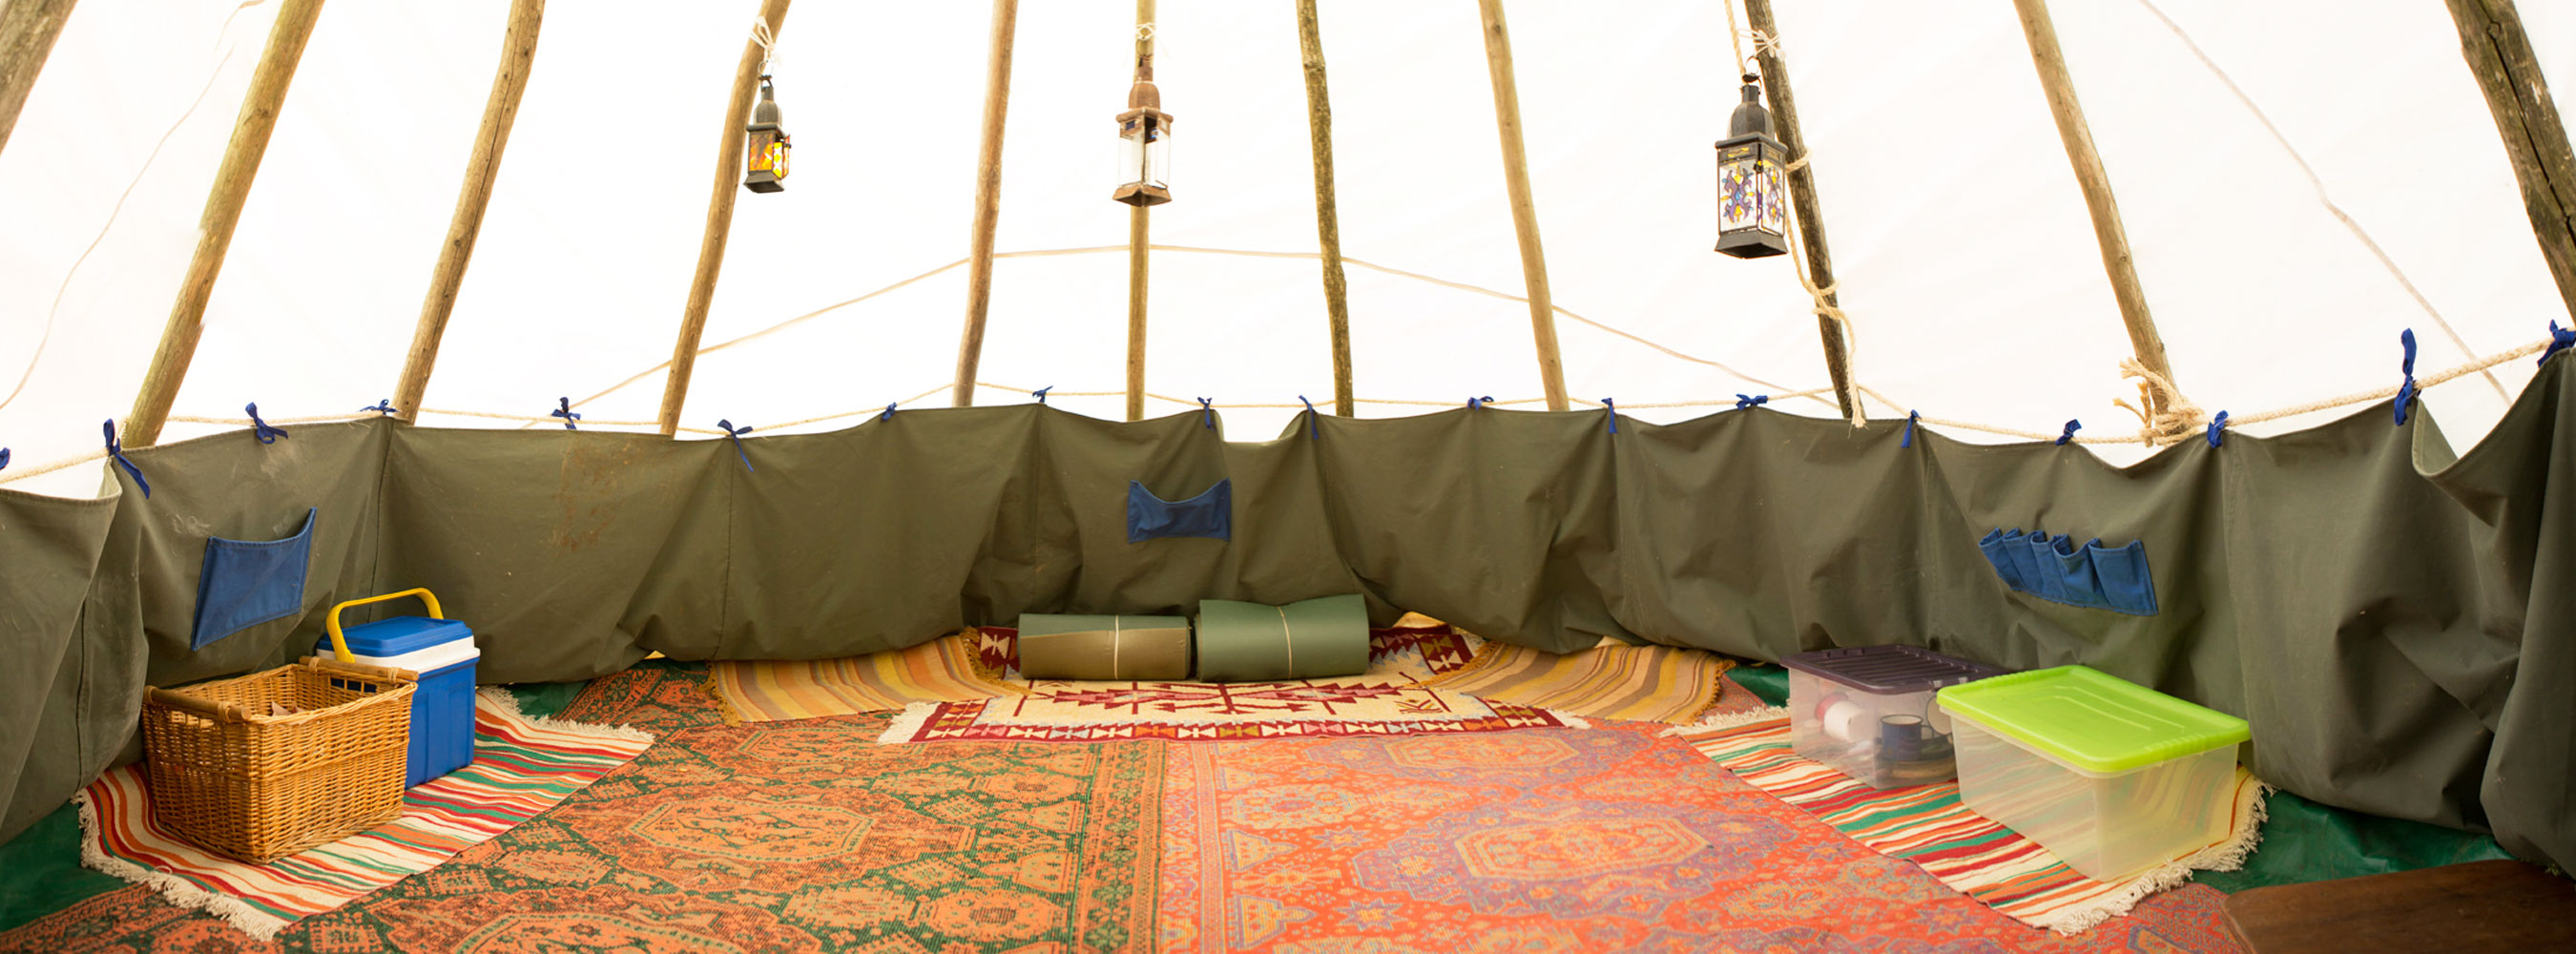 Tipi interior rugs, lanterns, cooking equipment, bedrolls